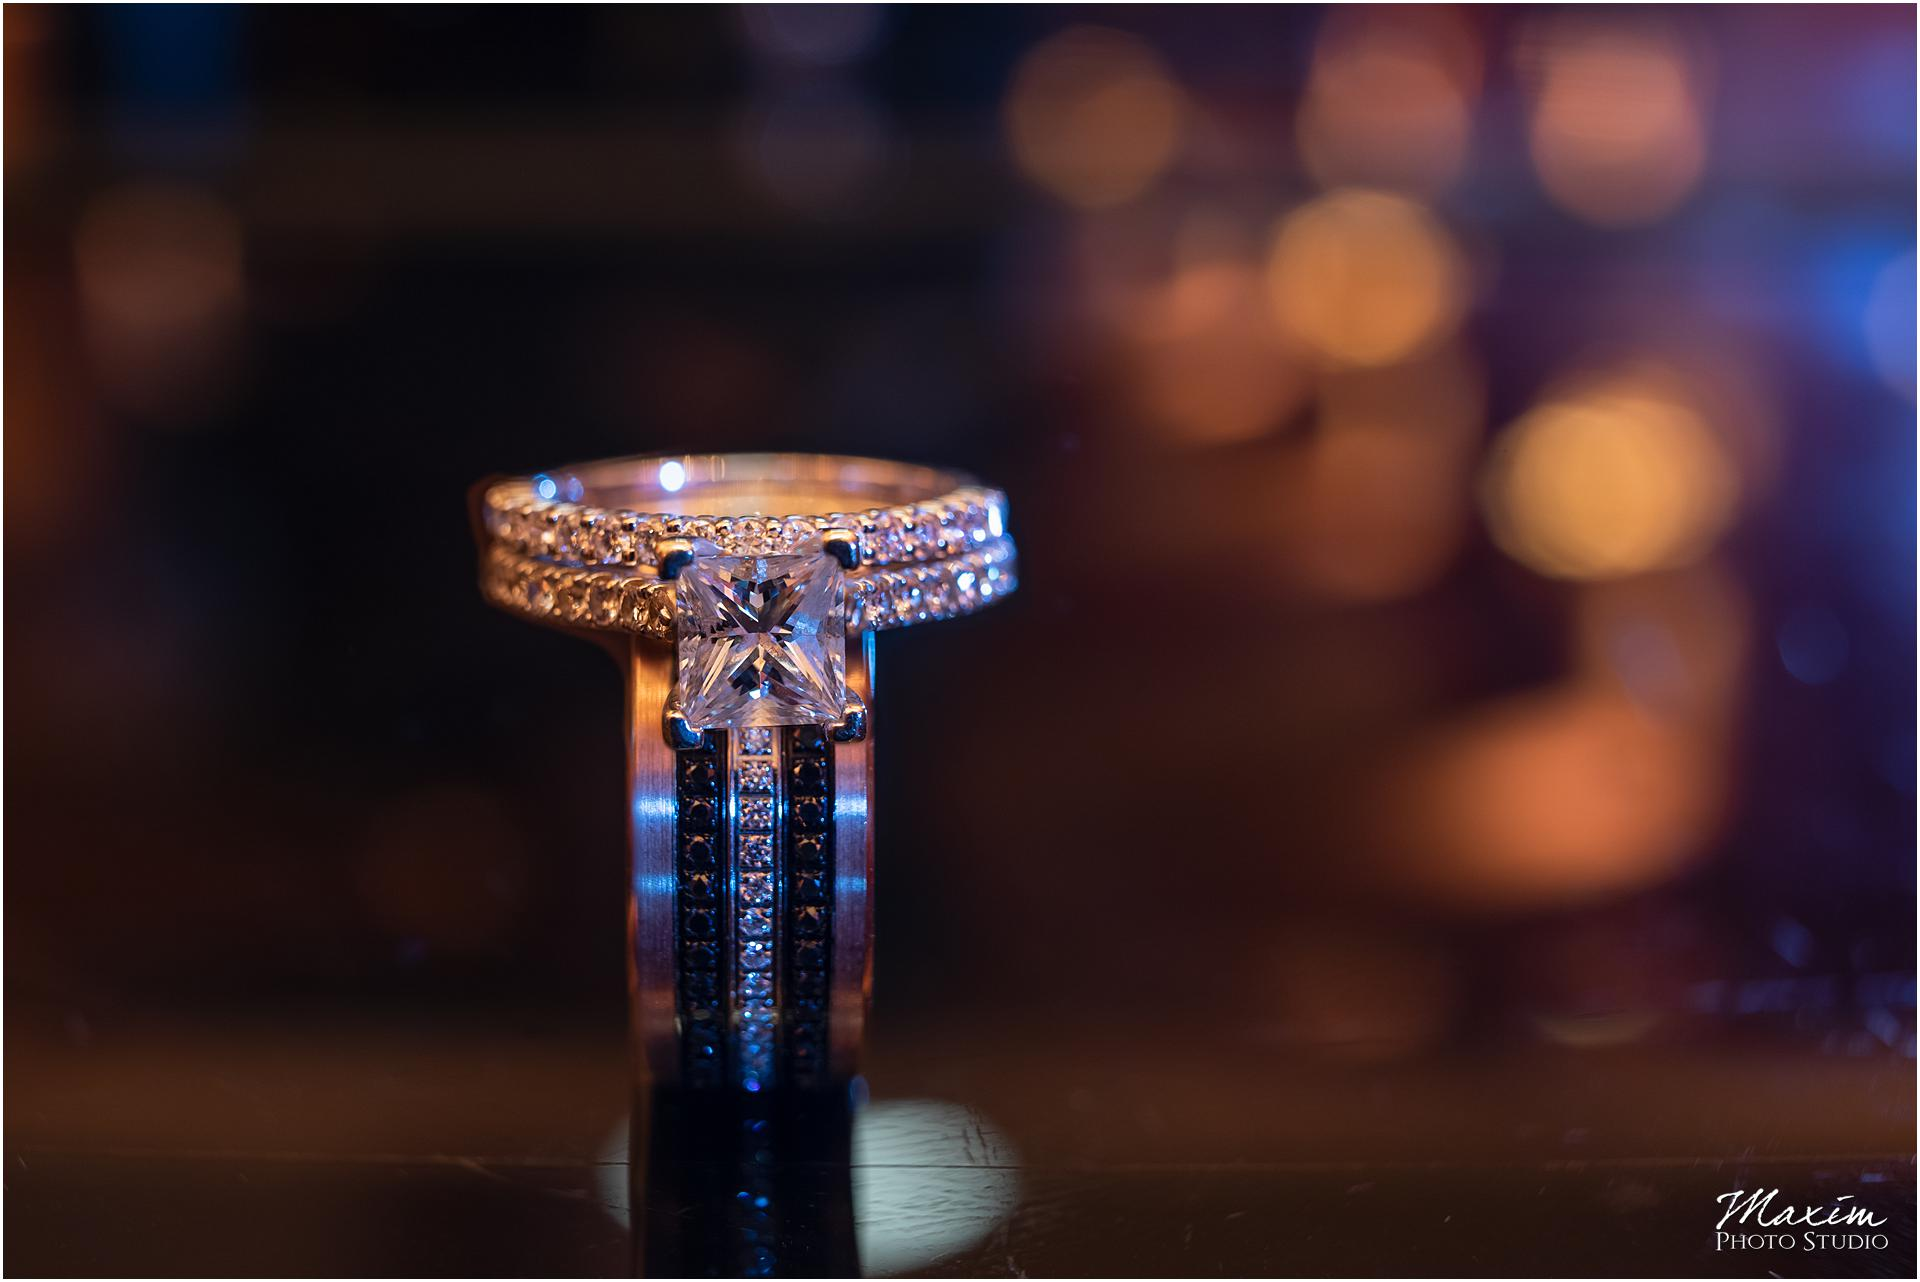 Condado Vanderbilt Wedding Ring